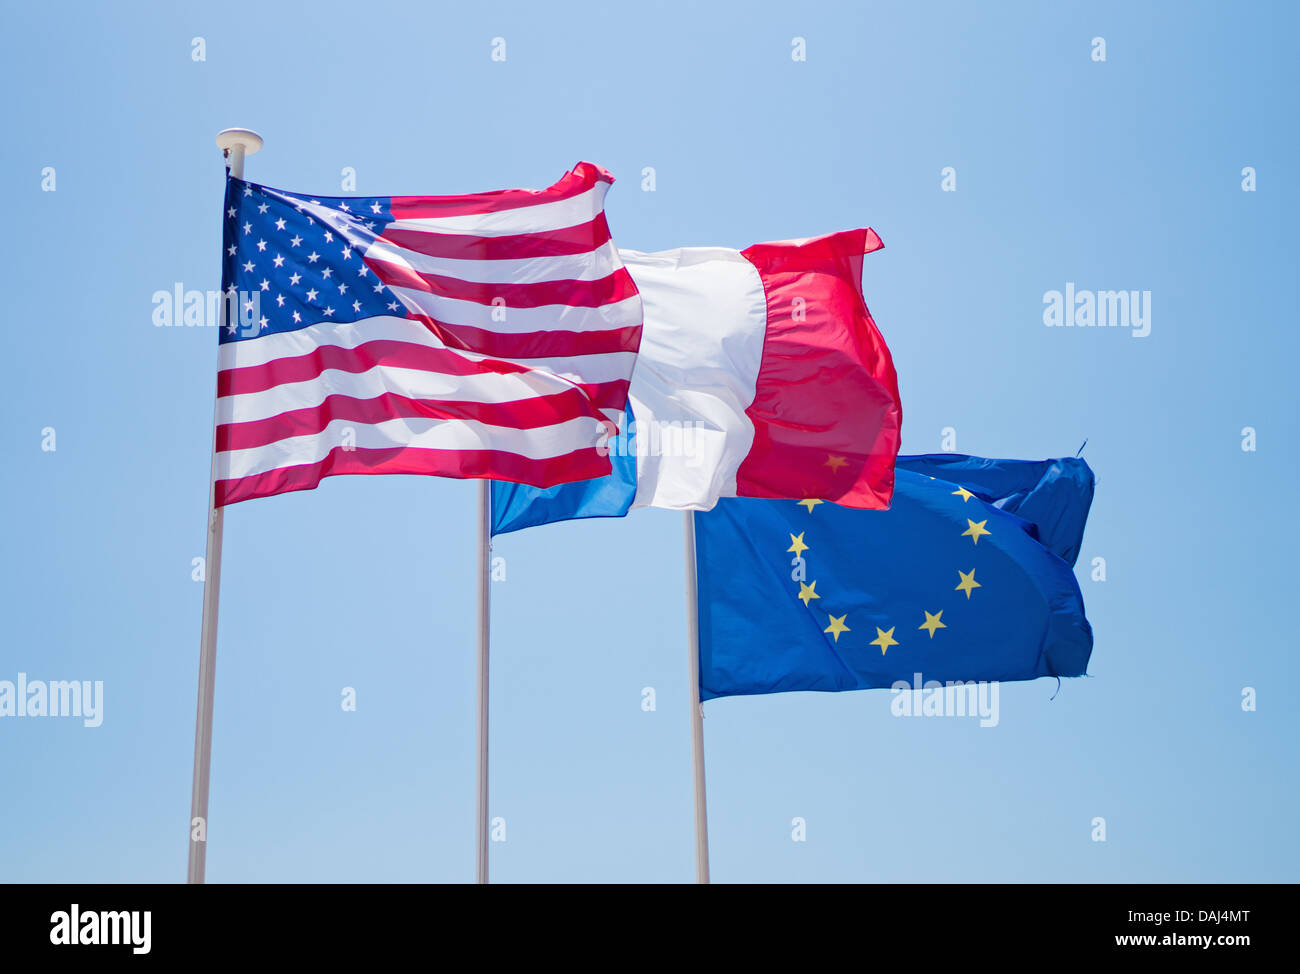 National flags of USA, and France with  the EEC flag, flying above the promenade in Nice, France - Stock Image